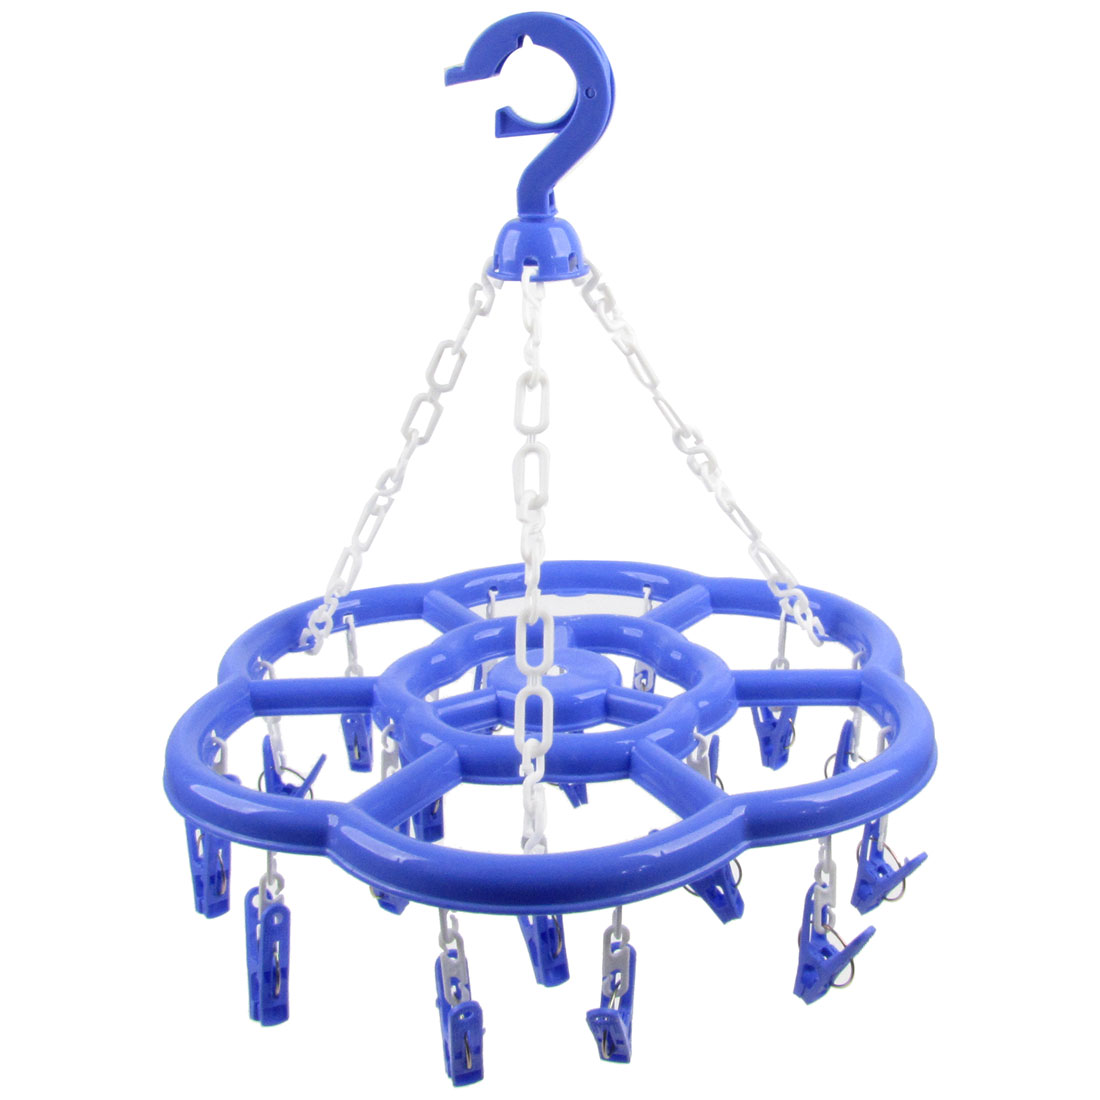 Swivel Hook Blue Plastic Flower Frame 18 Pegs Drying Rack Clotheshorse Hanger